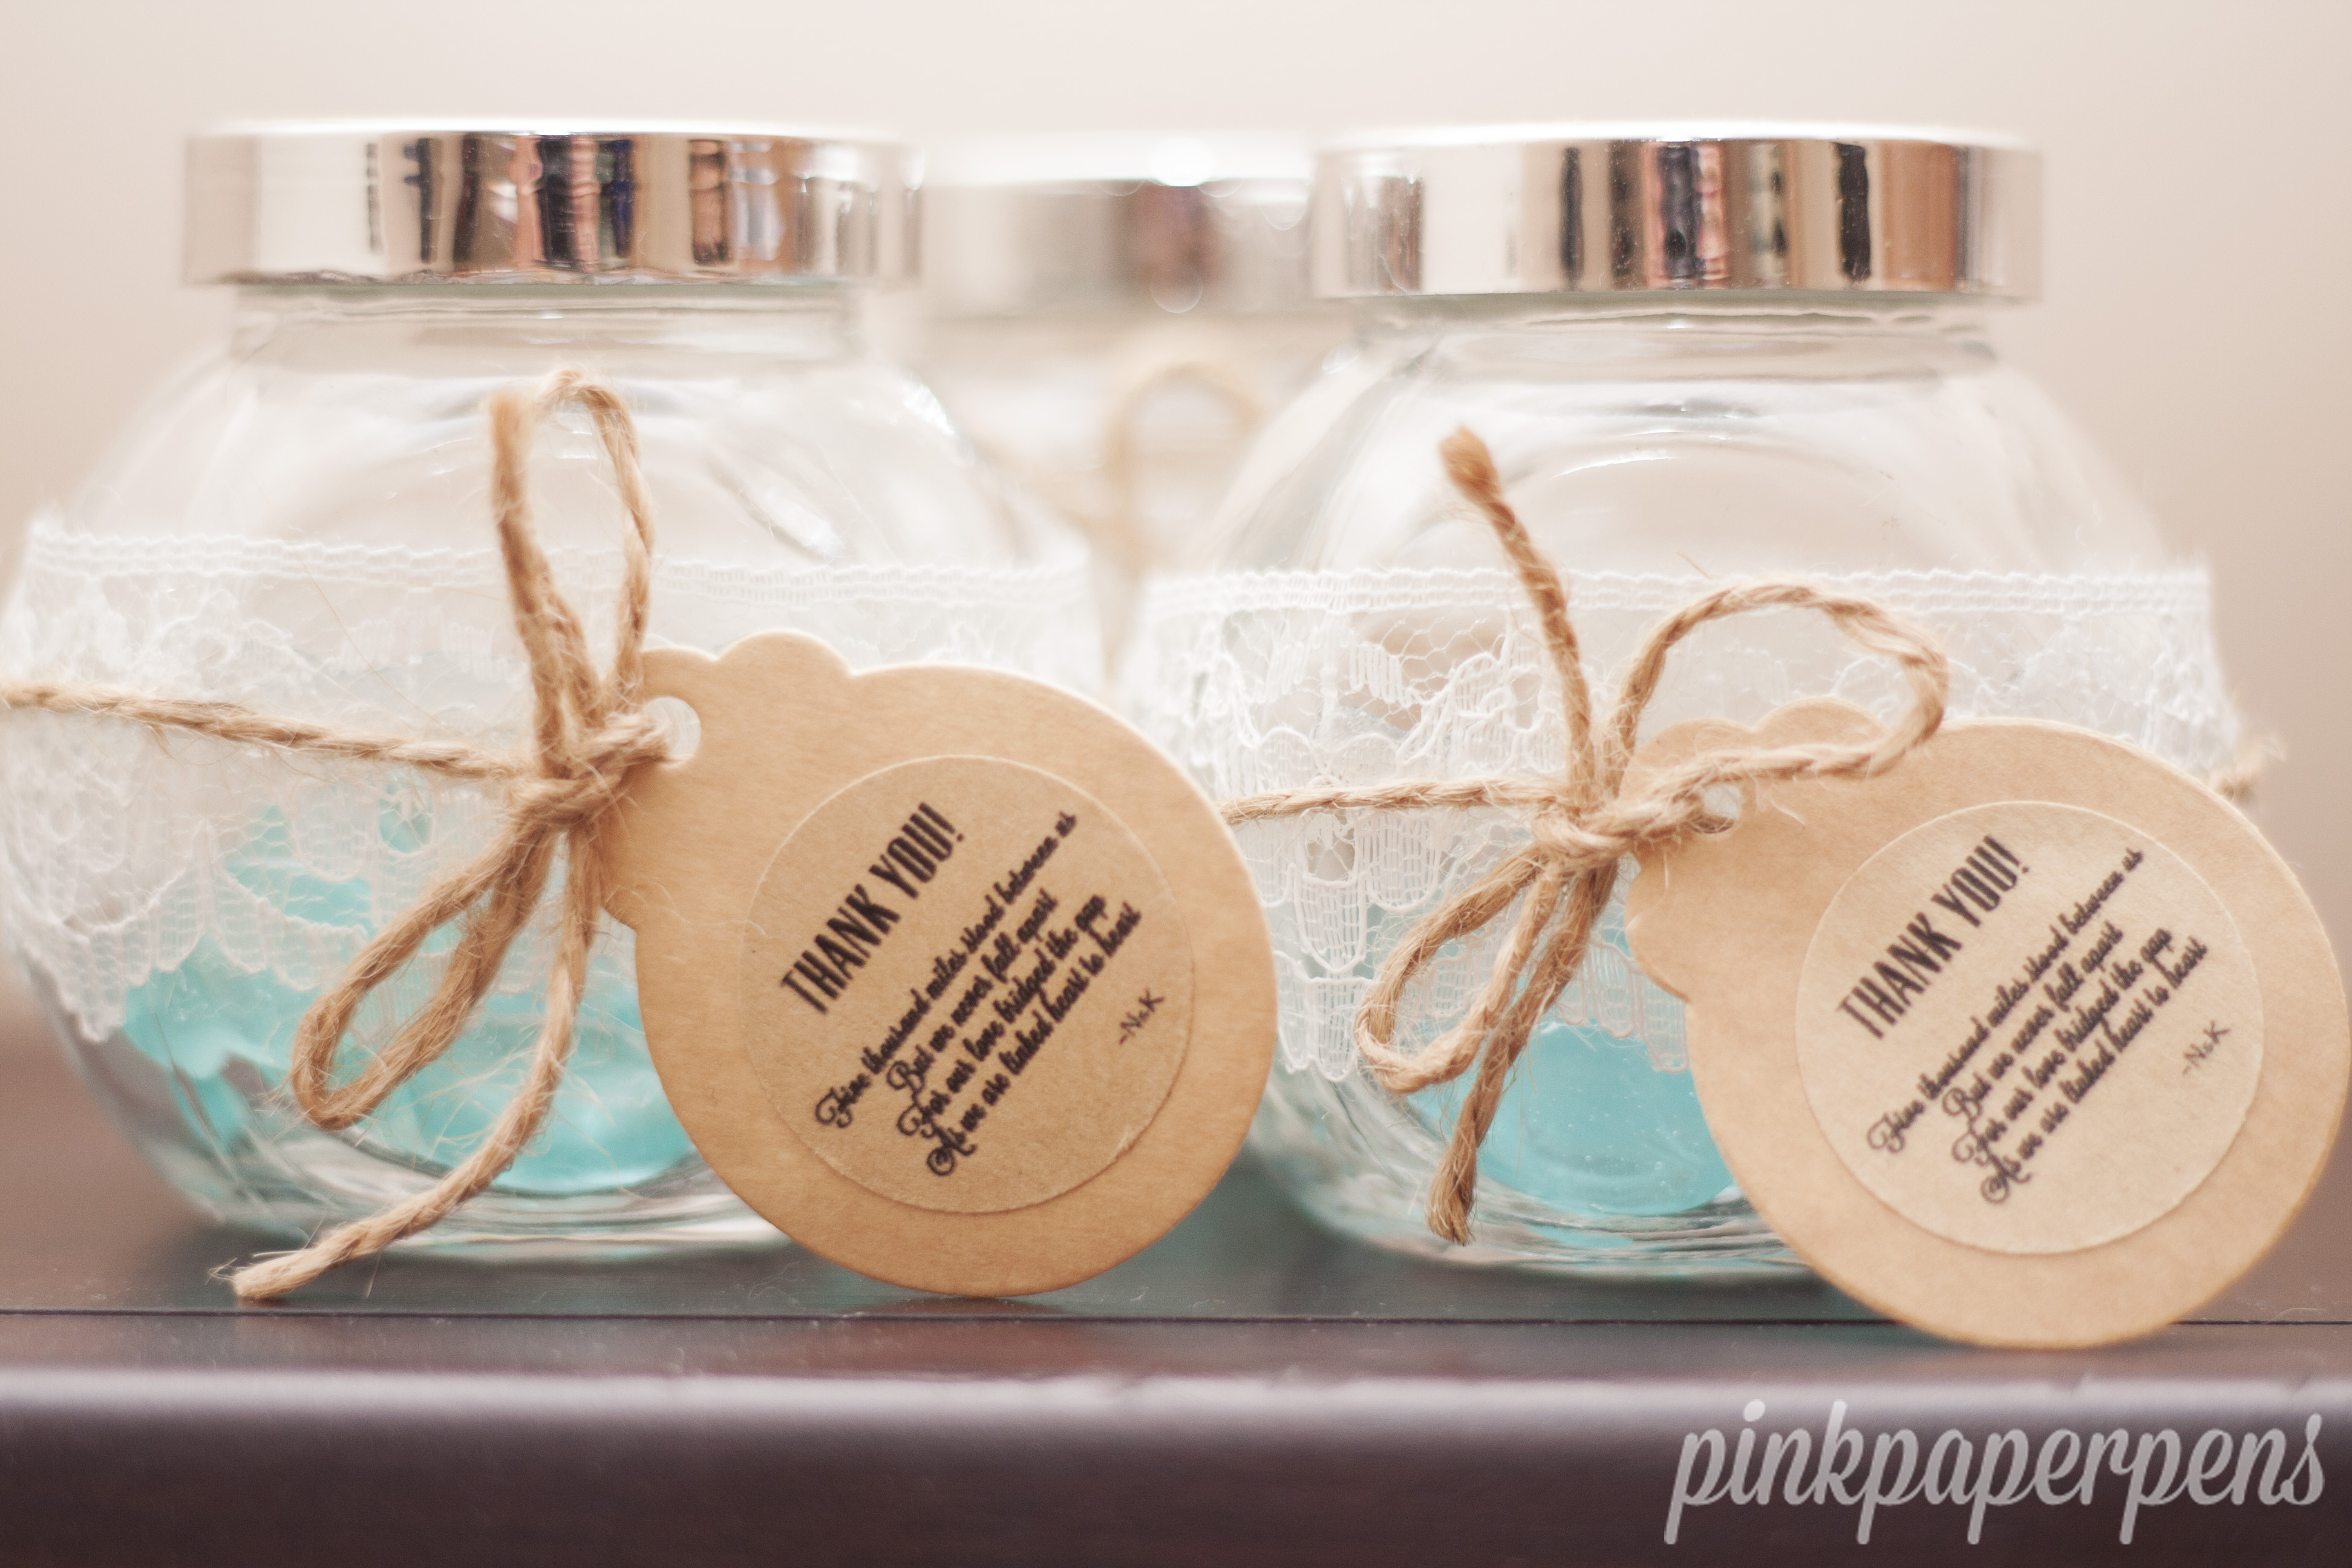 sweepstakes promotions lacey mason jars diy wedding giveaways quaint quinn 1224